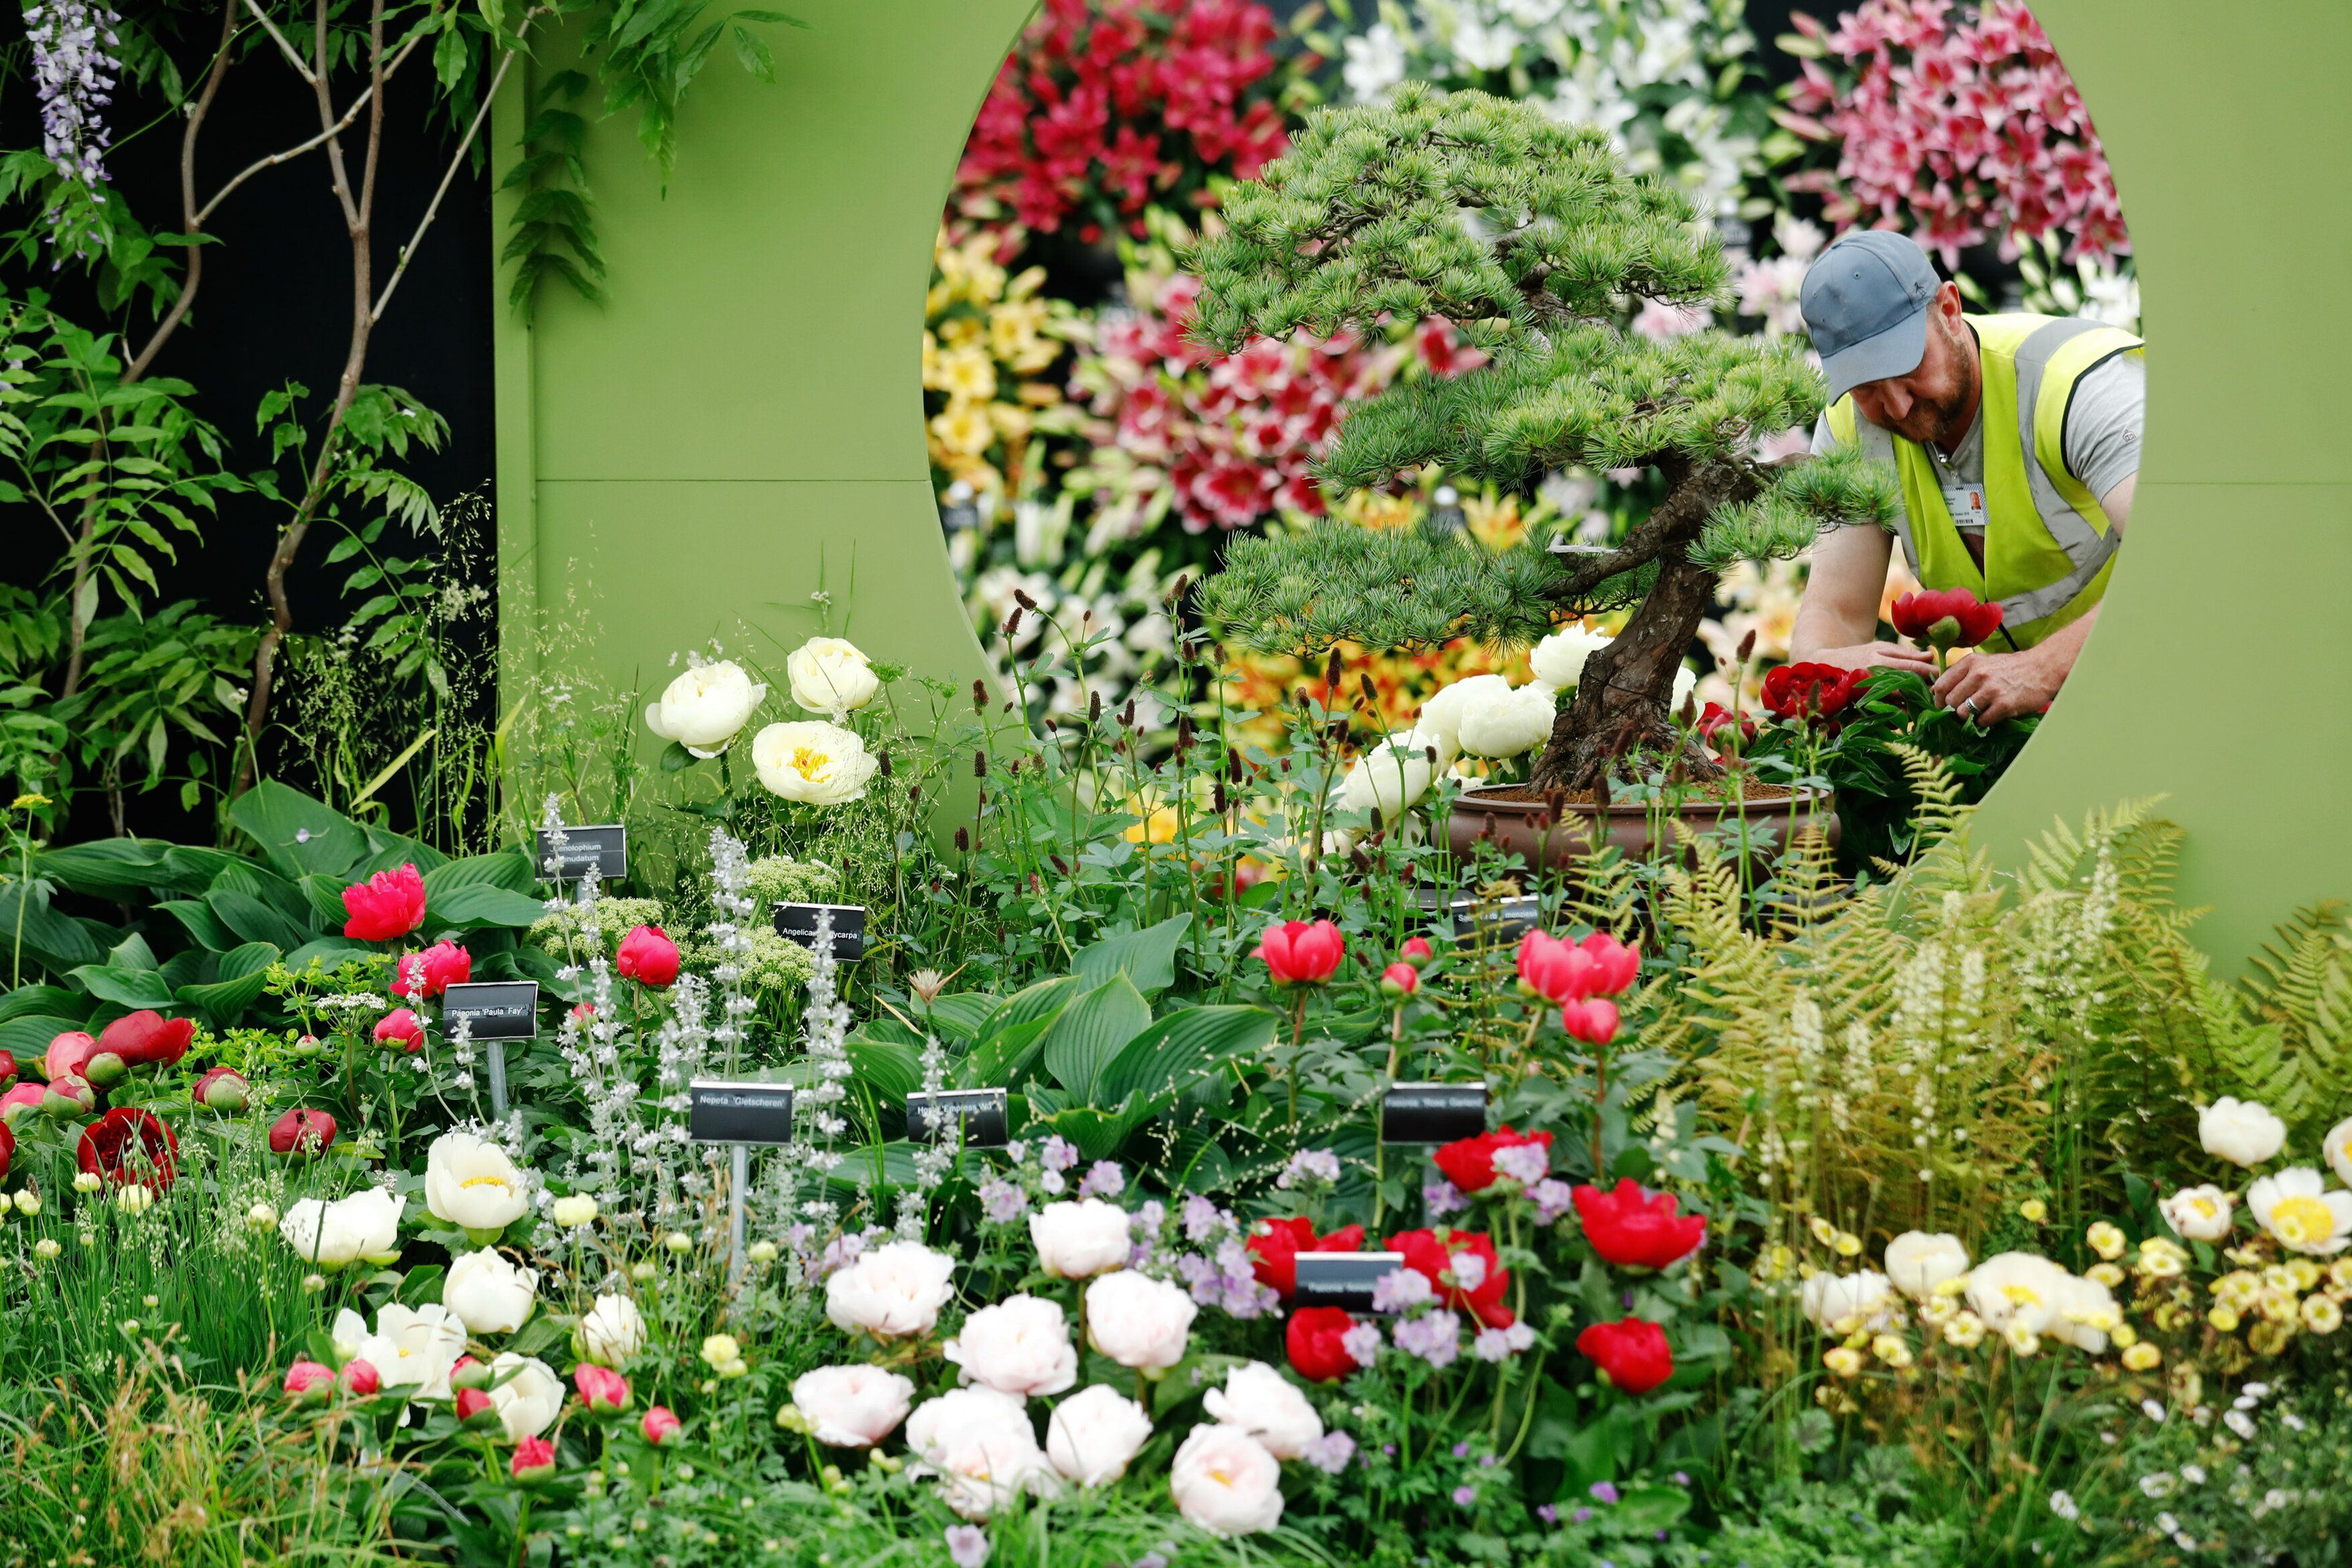 Coronavirus (COVID-19): Chelsea Flower Show 2020 in May is cancelled, RHS confirms